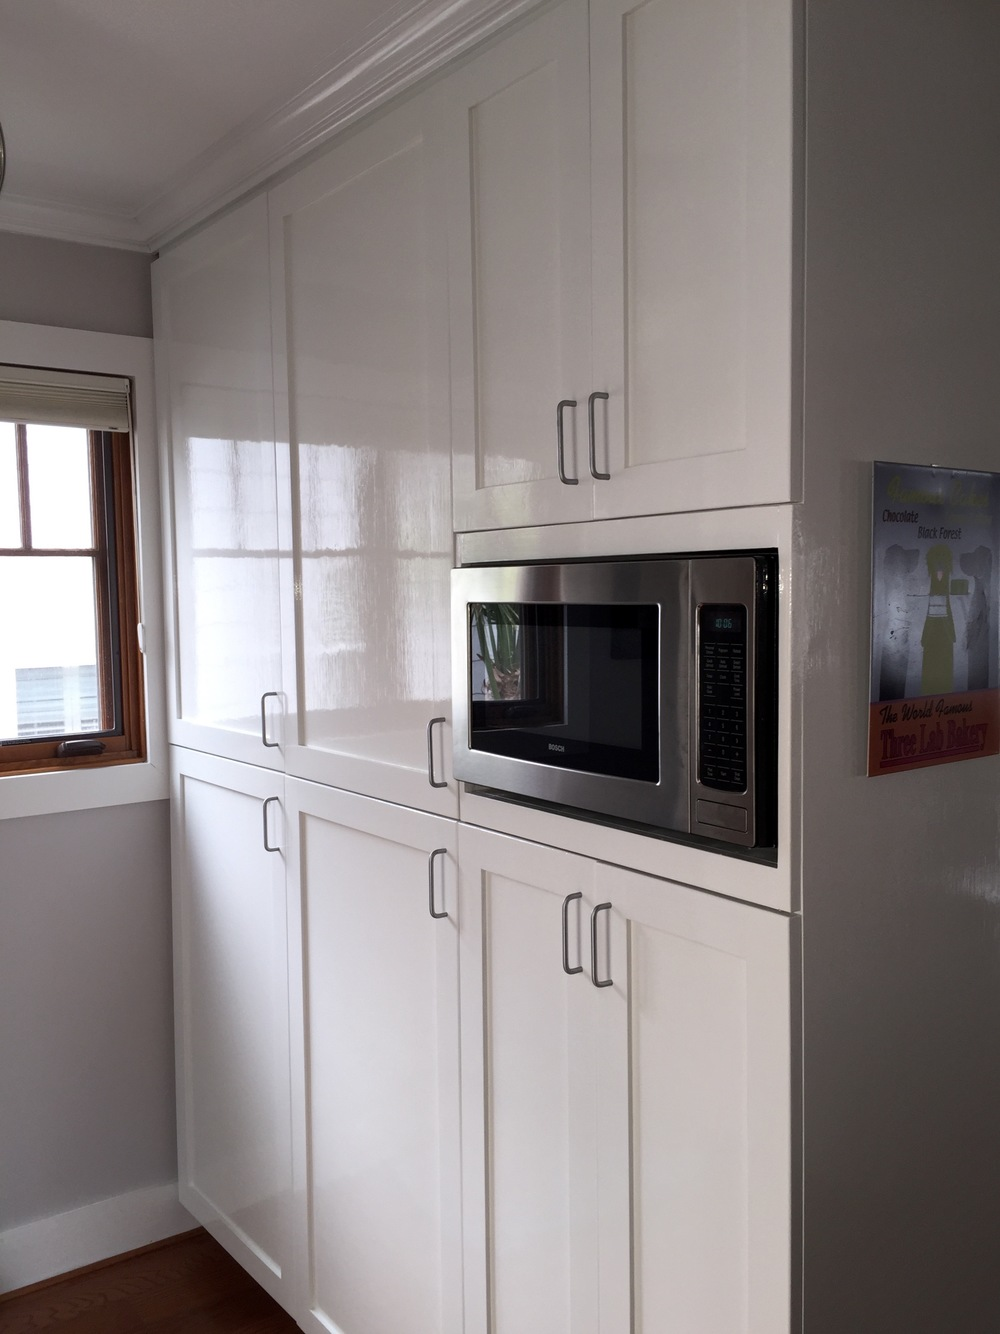 KITCHEN CABINETS — BENJAMIN MOORE ADVANCE & CLEAR COAT, BRUSHED/ CROWN MOULDING — PAINTED WHITE